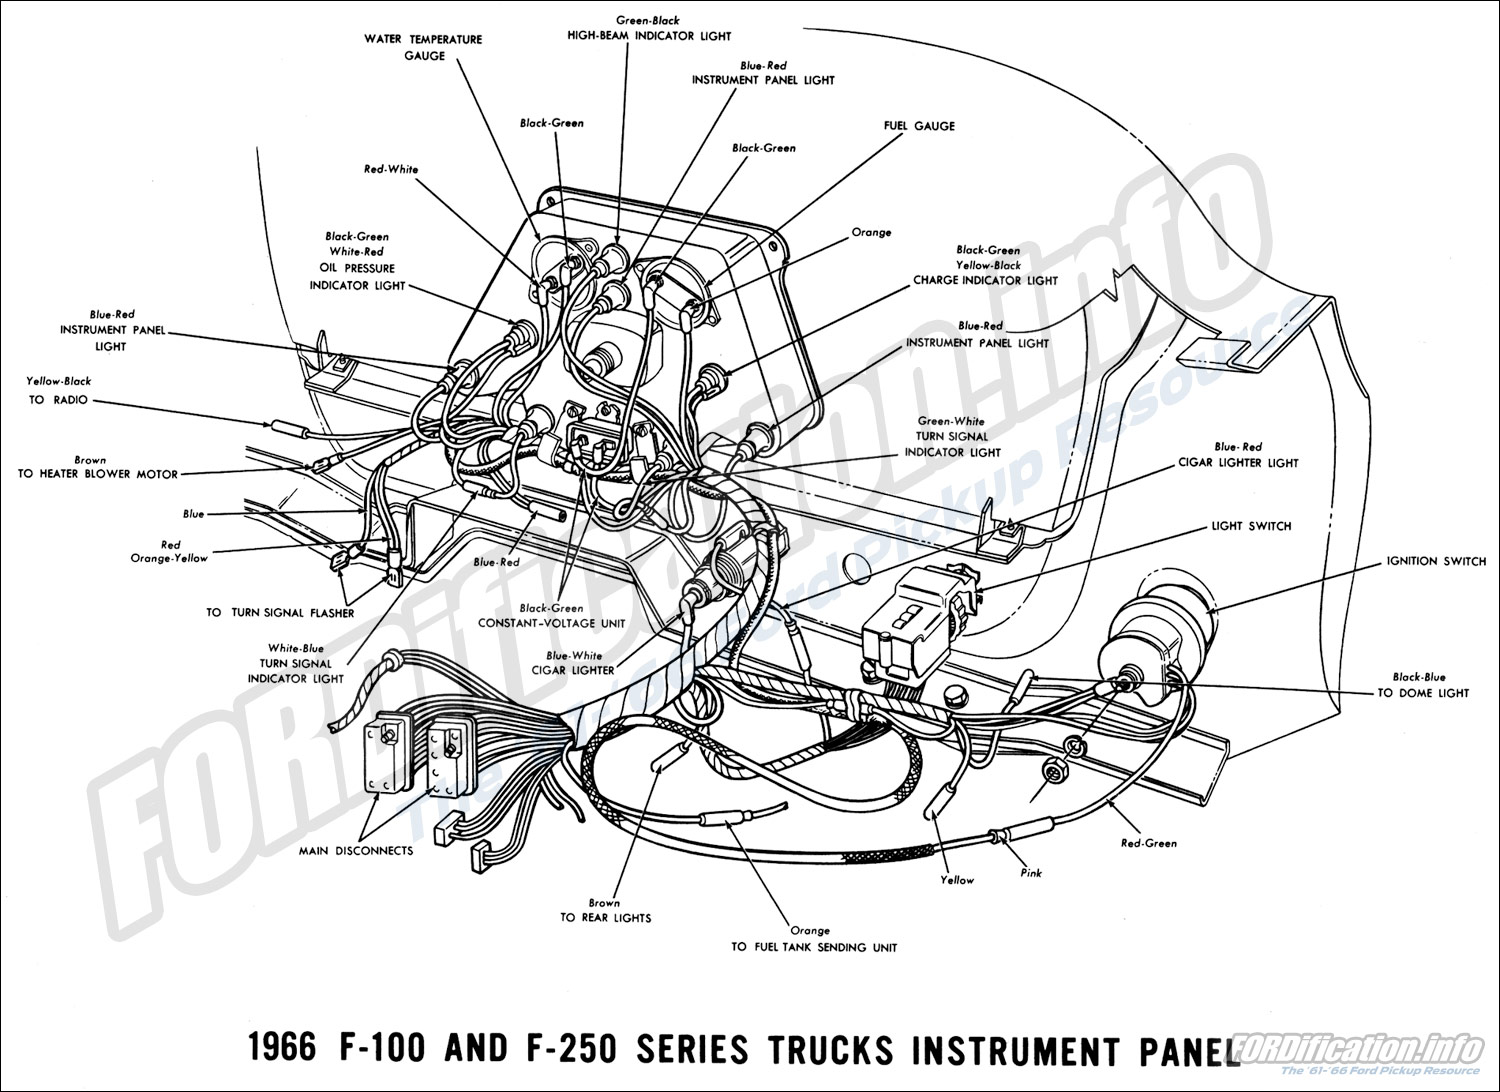 1966 Ford Alternator Wiring - Irg.lektionenderliebe.de •  Ford Alternator Wiring Diagram on ford starter wiring diagram, 1966 ford backup light wiring diagram, 1966 ford ignition switch wiring diagram, 1966 ford f-250 wiring diagram, ford 3 wire alternator diagram, 1966 mustang color wiring diagram, 1966 ford truck wiring diagram, 1966 ford charging system diagram, ford truck alternator diagram, 1966 mustang horn wiring diagram, 1966 ford thunderbird wiring diagram, 66 mustang ignition wiring diagram, 1966 mustang engine wiring diagram, 67 mustang ignition wiring diagram, 1966 ford mustang alternator, ford one wire alternator diagram, 1996 mustang wiring diagram, 1966 ford galaxie wiring-diagram, 1966 mustang dash wiring diagram, 1966 ford fuel gauge diagram,